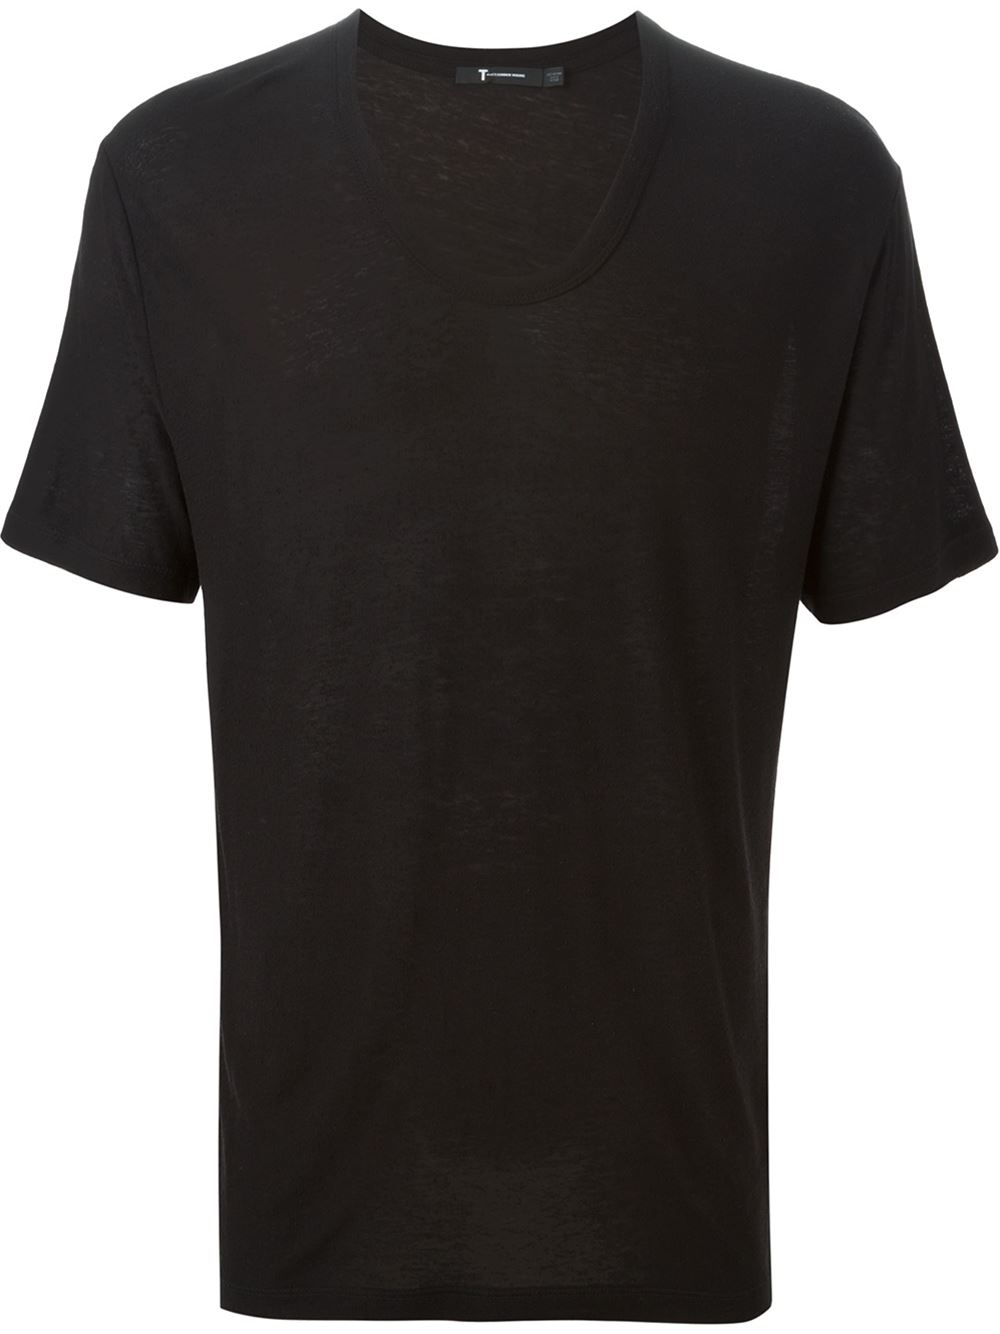 T by alexander wang scoop neck t shirt in black for men lyst for T by alexander wang t shirt